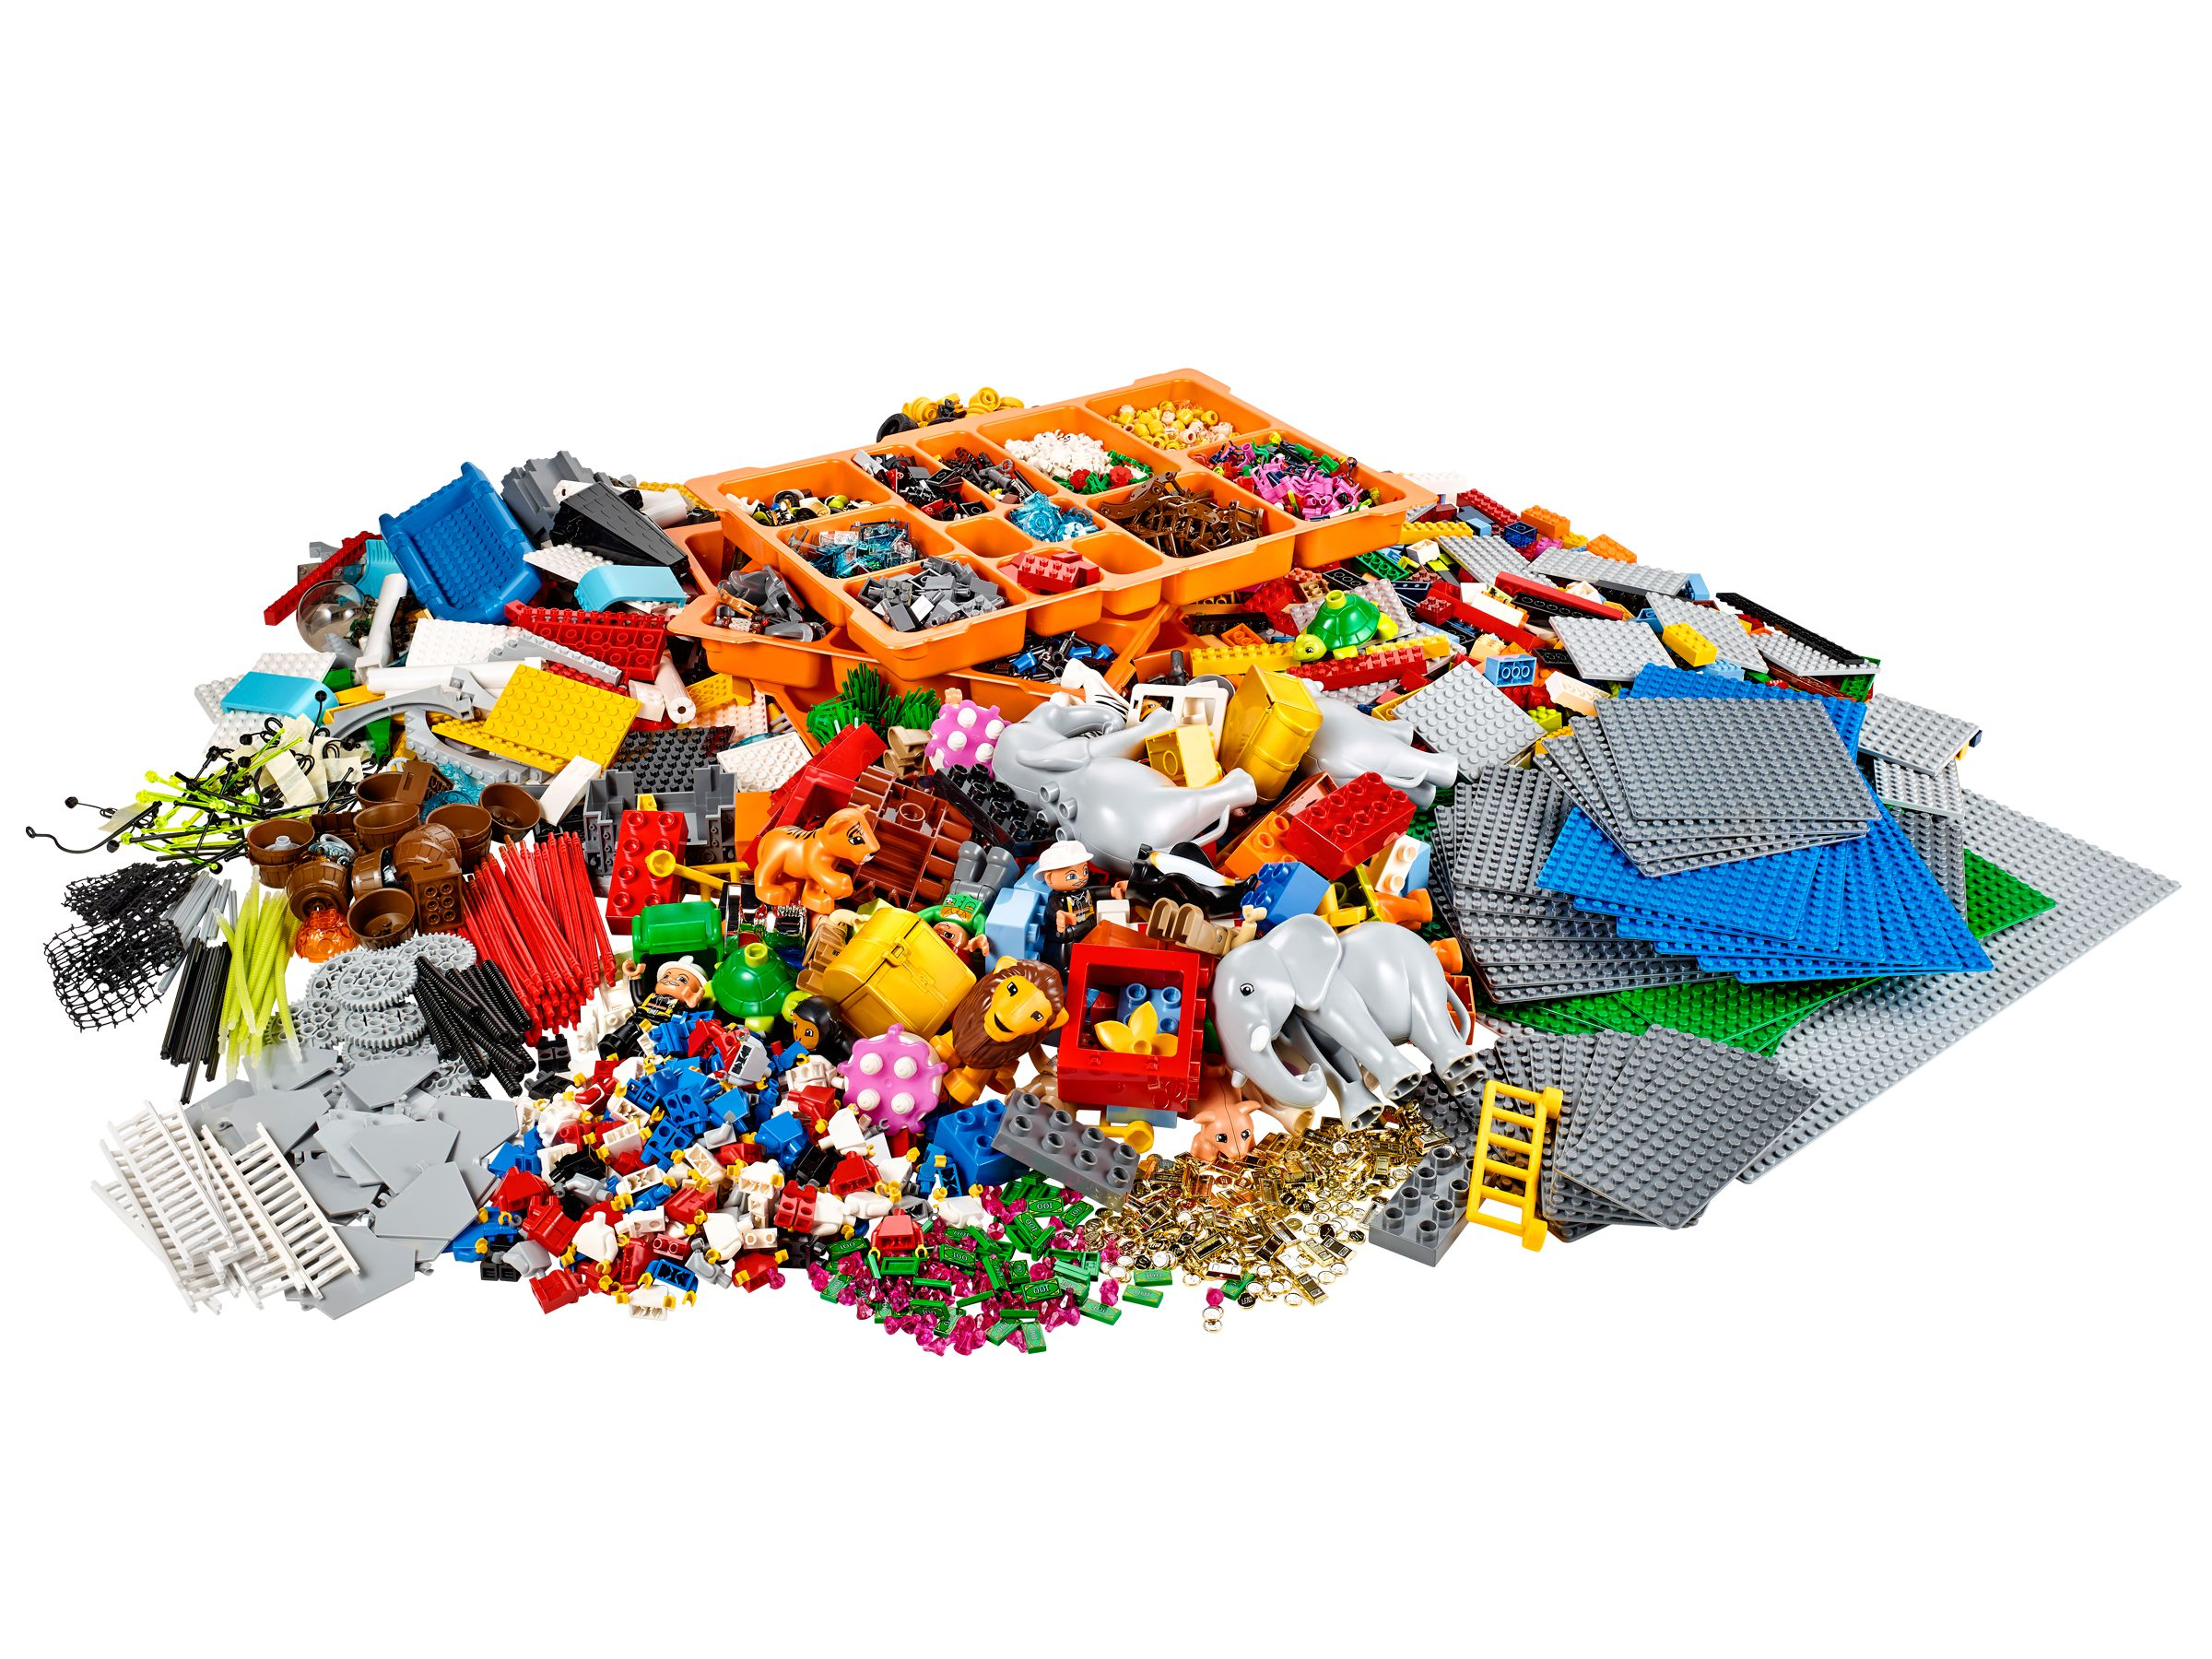 LEGO Serious Play 2000430 Identity and Landscape Set LEGO_2000430.jpg